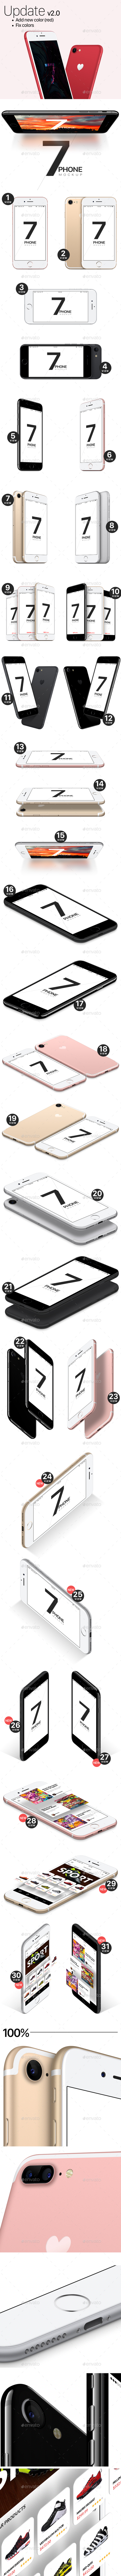 Phone 7 and 7 Plus Vector Mockups